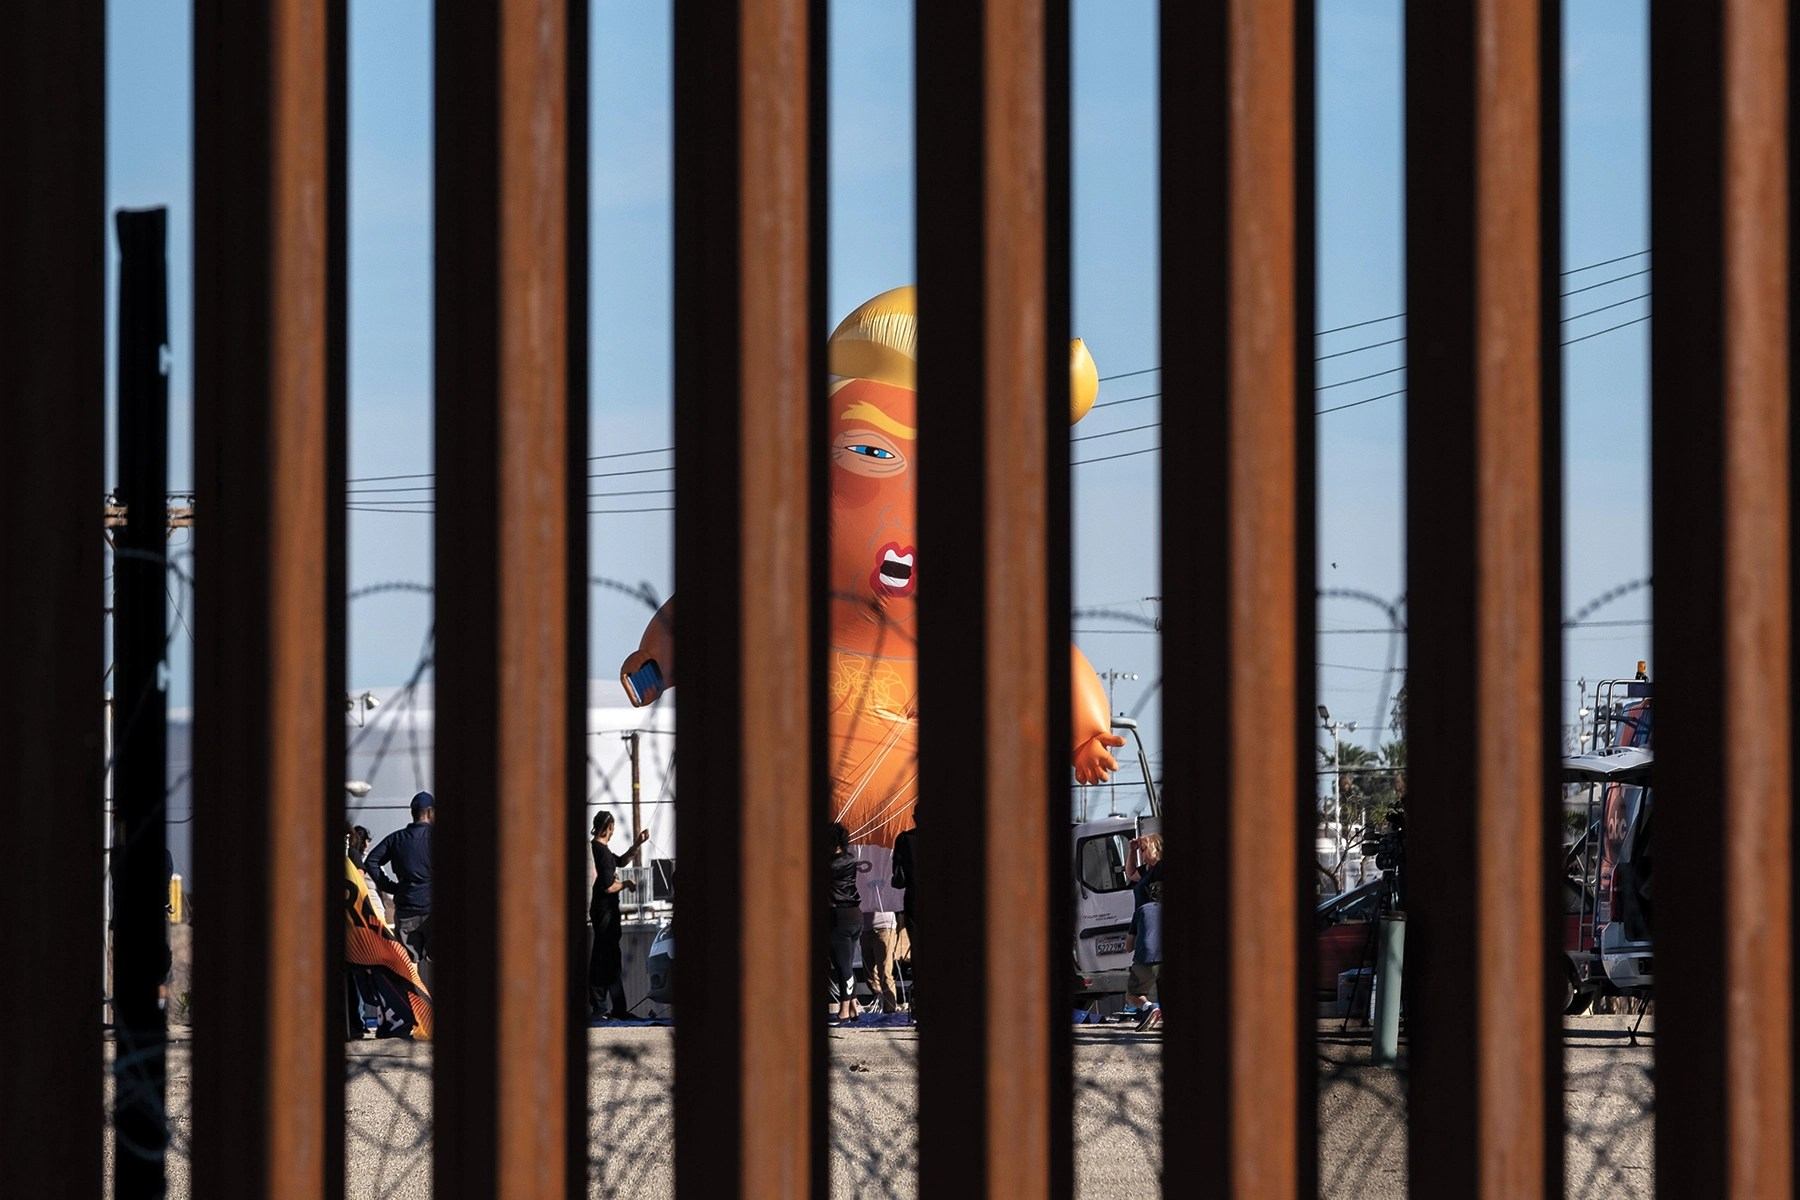 TOPSHOT - A satirical balloon of a baby US President Donald Trump is seen through the US-Mexico border fence during a demonstration against him prior to his visit to Calexico, California, as seen from Mexicali, Baja California state, Mexico, on April 5, 2019. - President Donald Trump flew Friday to visit newly built fencing on the Mexican border, even as he retreated from a threat to shut the frontier over what he says is an out-of-control influx of migrants and drugs. (Photo by Guillermo Arias / AFP) (Photo by GUILLERMO ARIAS/AFP via Getty Images)